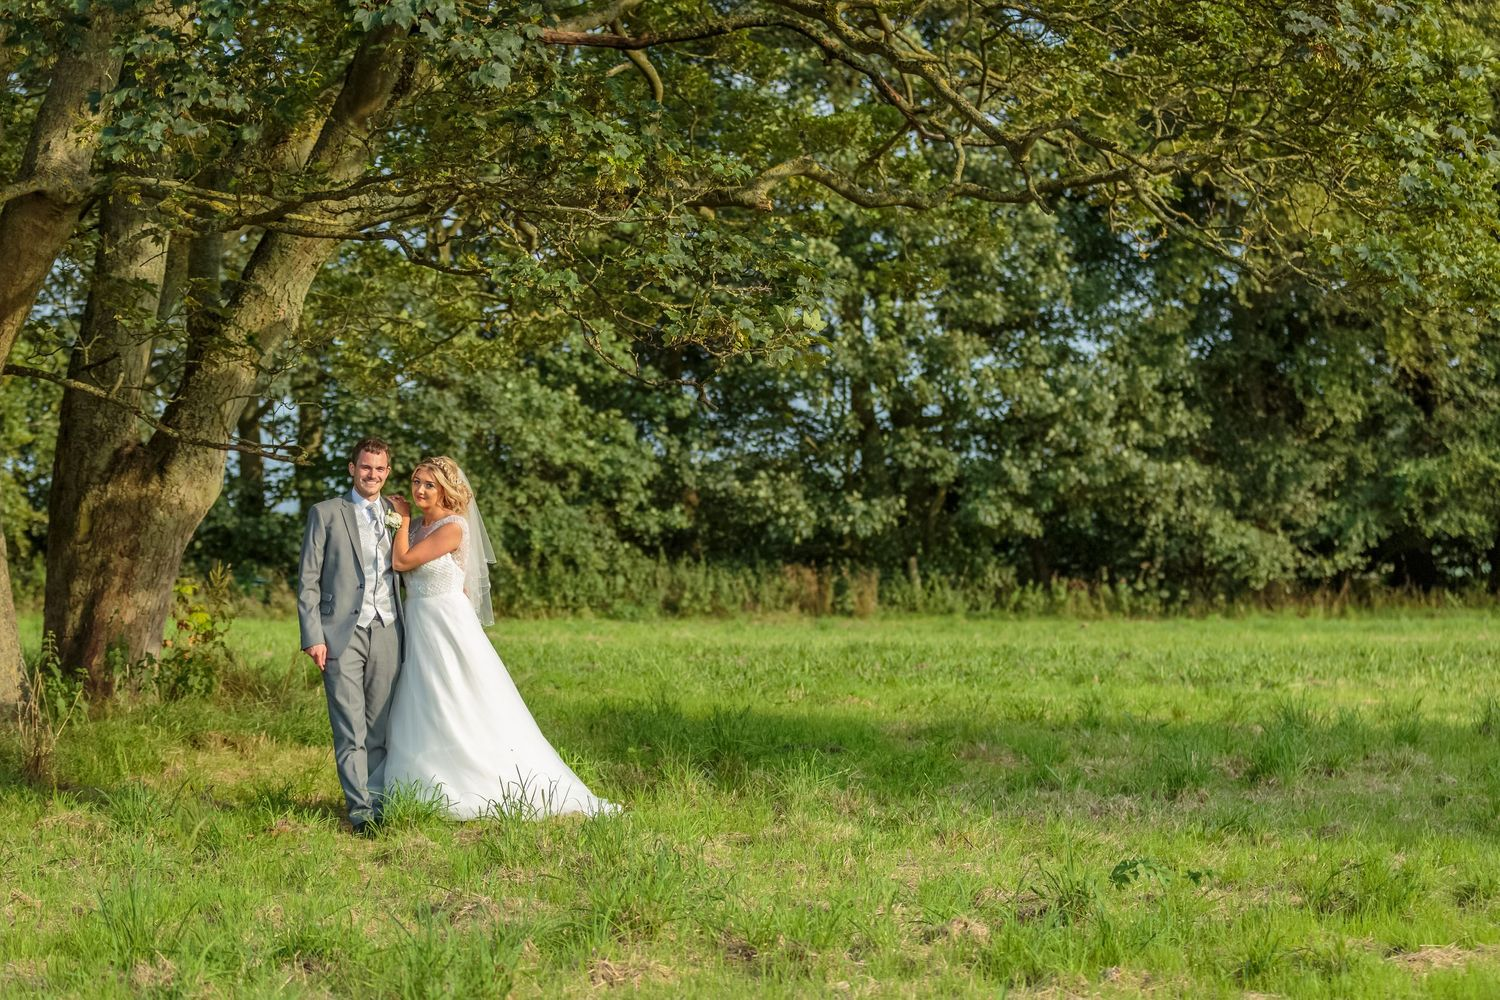 bride and groom posed her hands on his shoulder under a tree in the country grounds at west tower